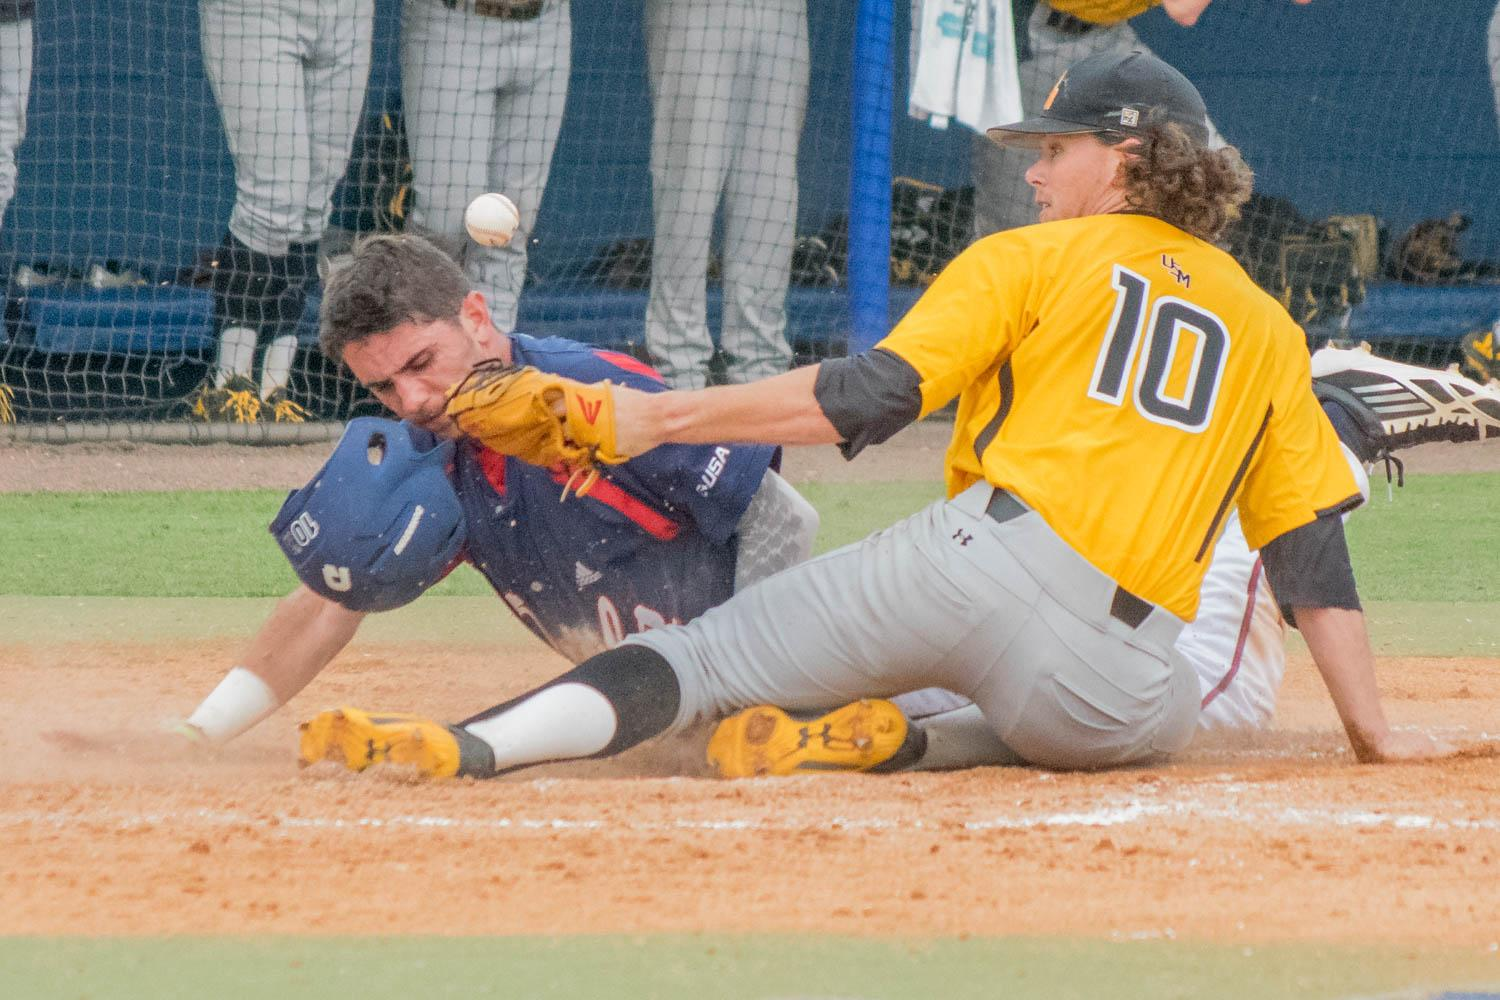 Junior shortstop CJ Chatham slides safely past the tag of University of Southern Missippi senior pitcher Jake Winston after a passed ball in the bottom of the sixth inning of the team's April 30 game. Ryan Lynch | Multimedia Editor